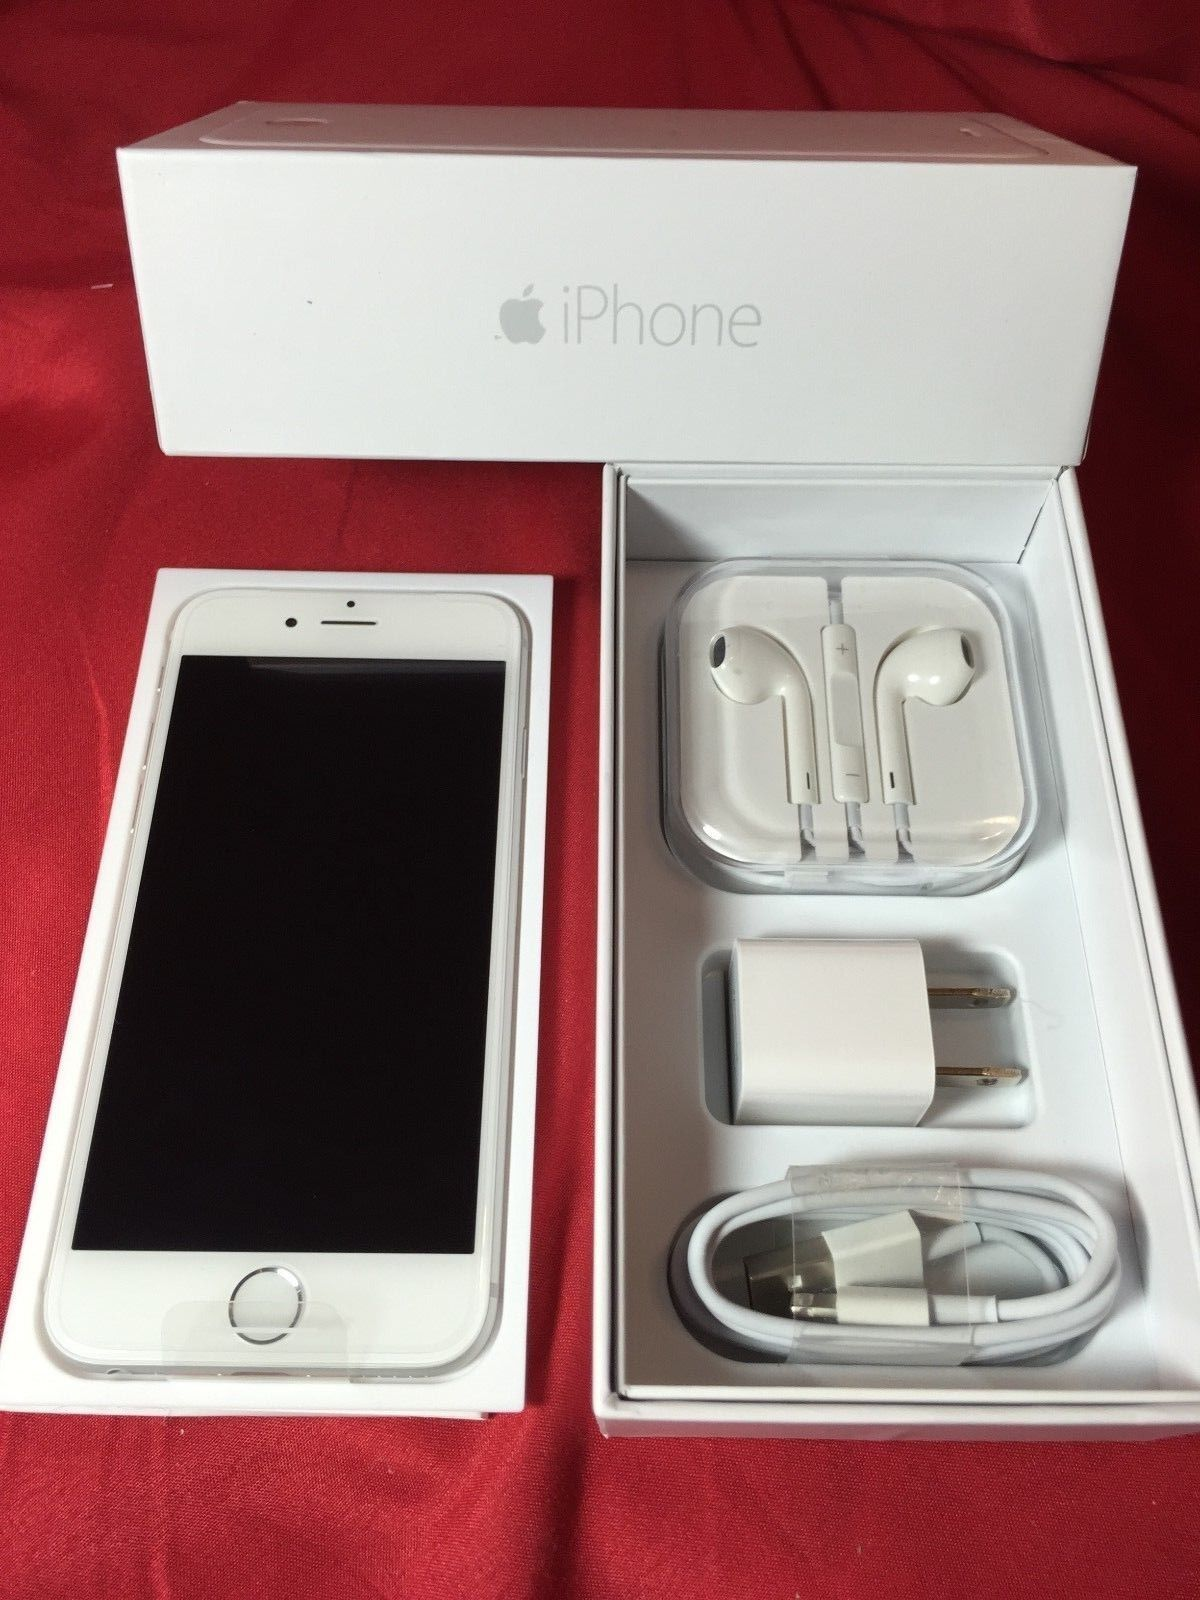 New Apple iPhone 6 16GB Silver Factory GSM Unlocked 4G LTE Smartphone